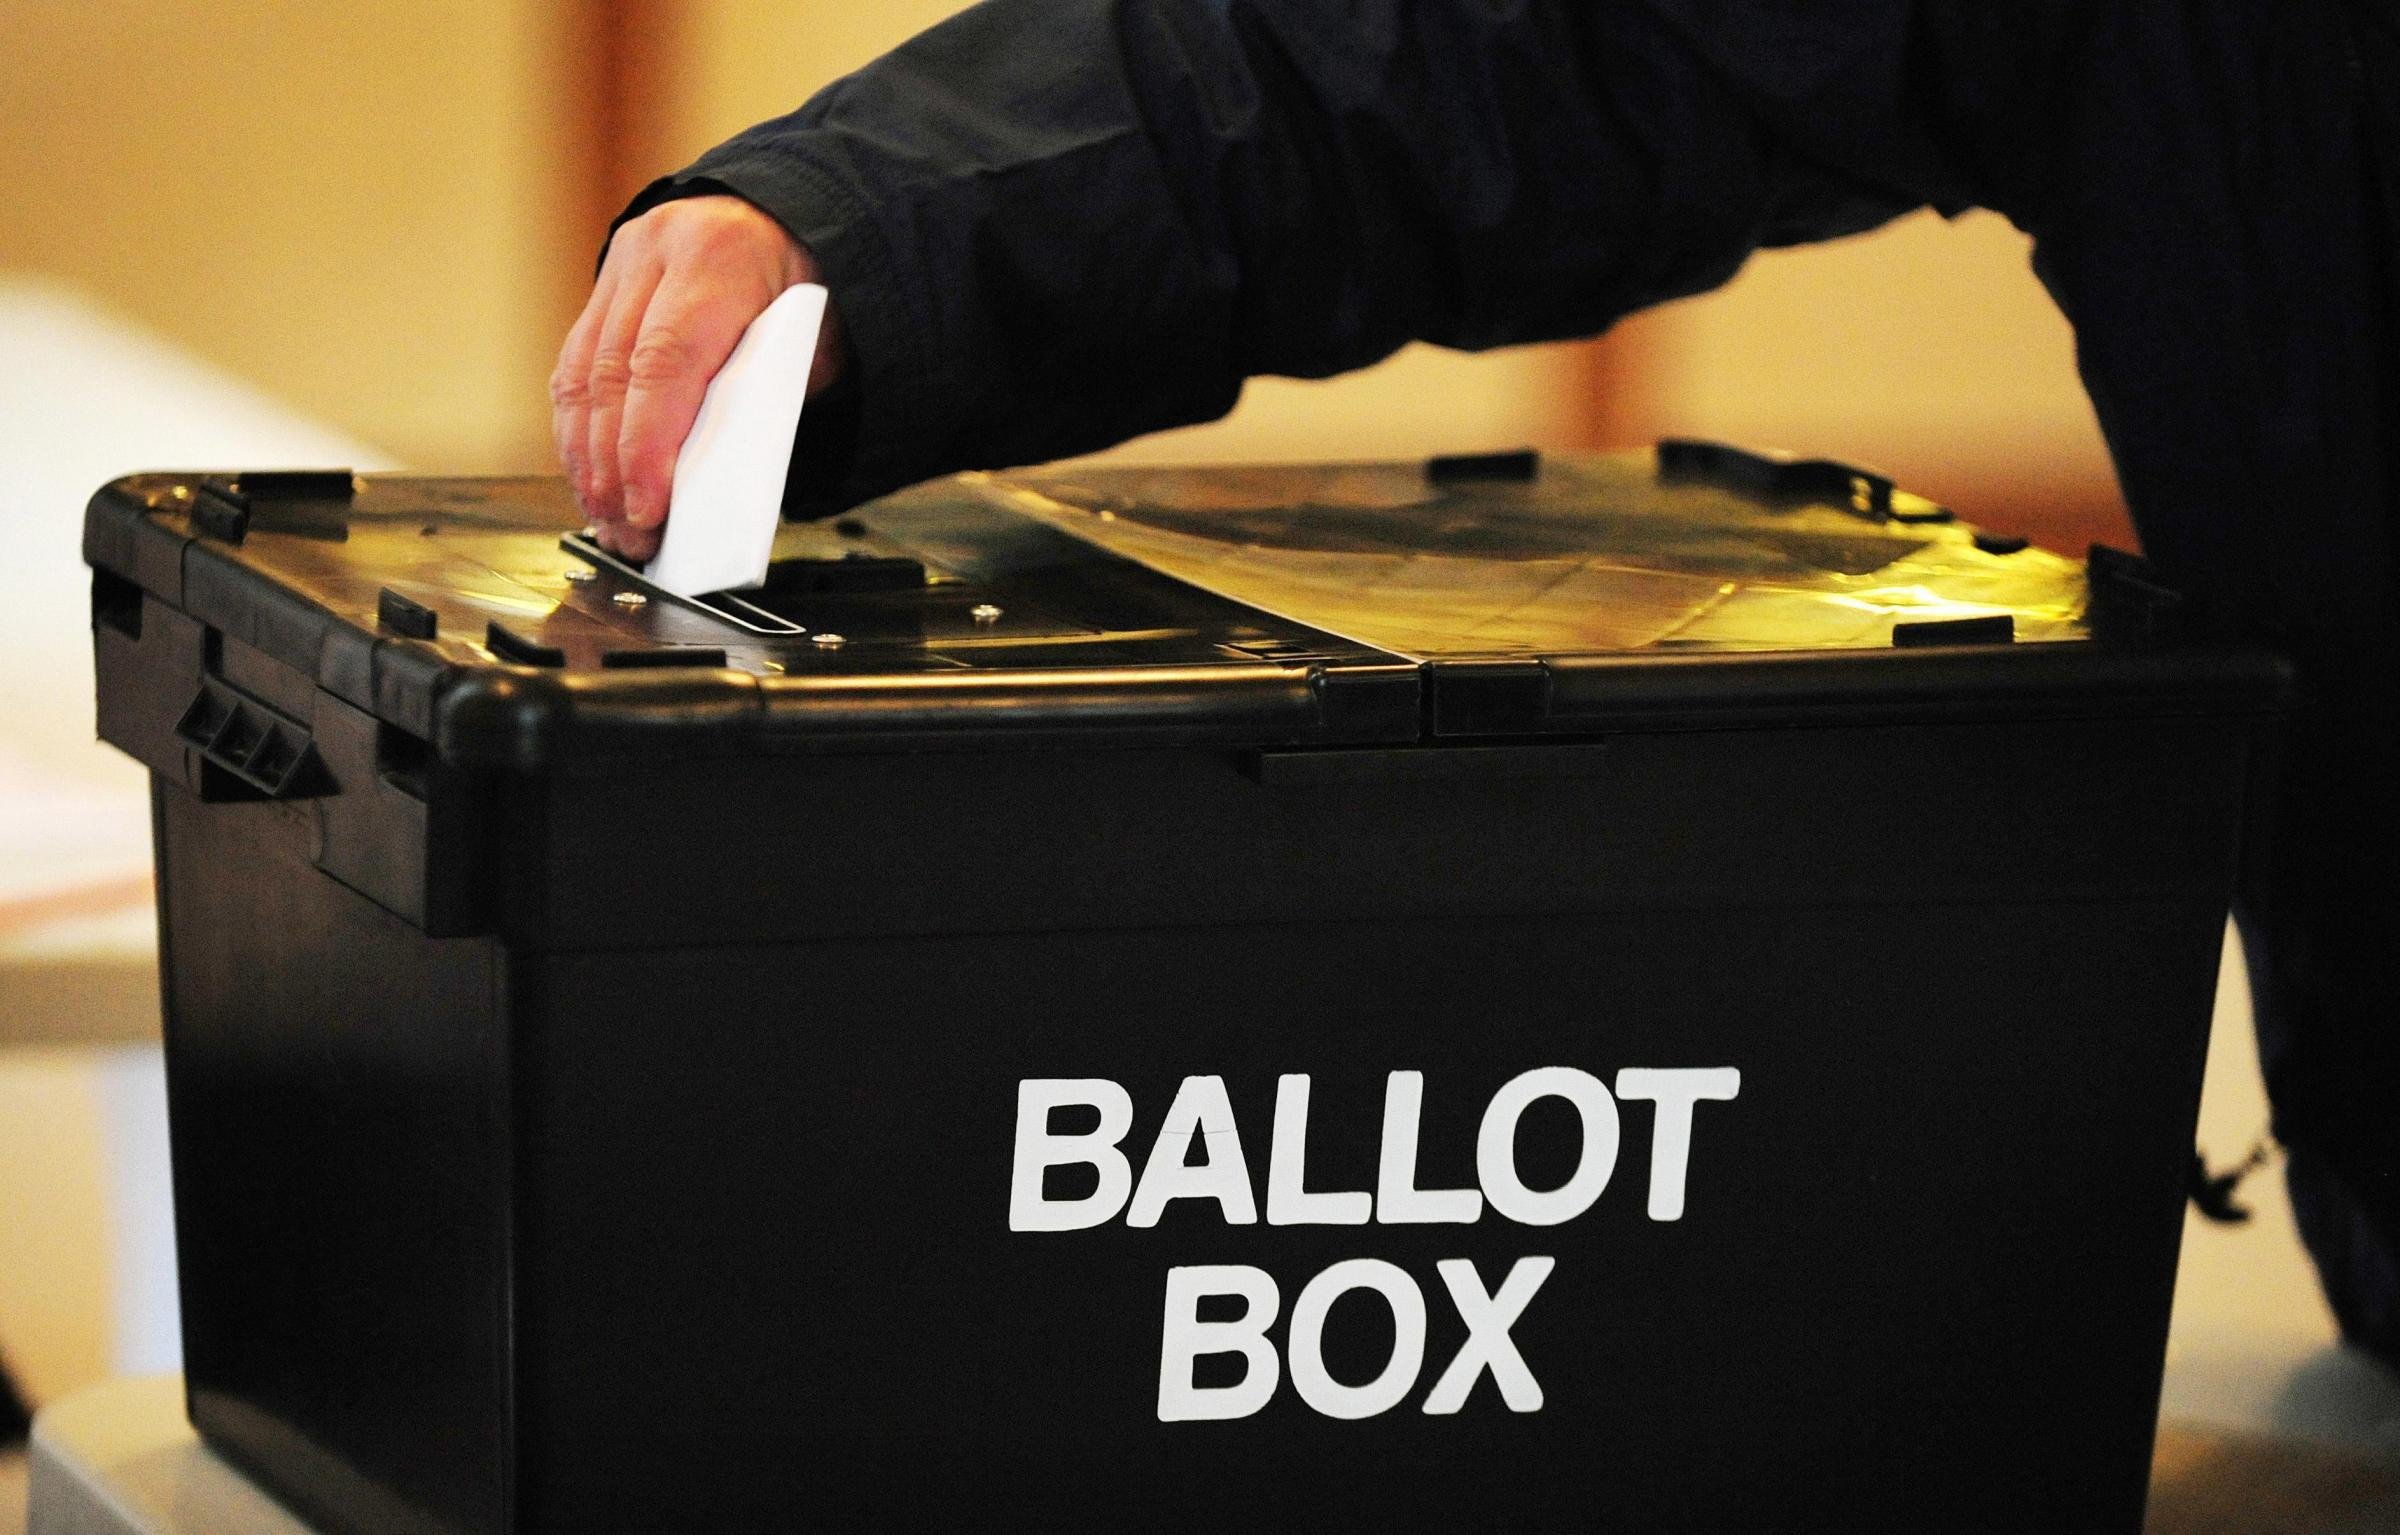 Parliamentary candidates confirmed for general election as nominations close